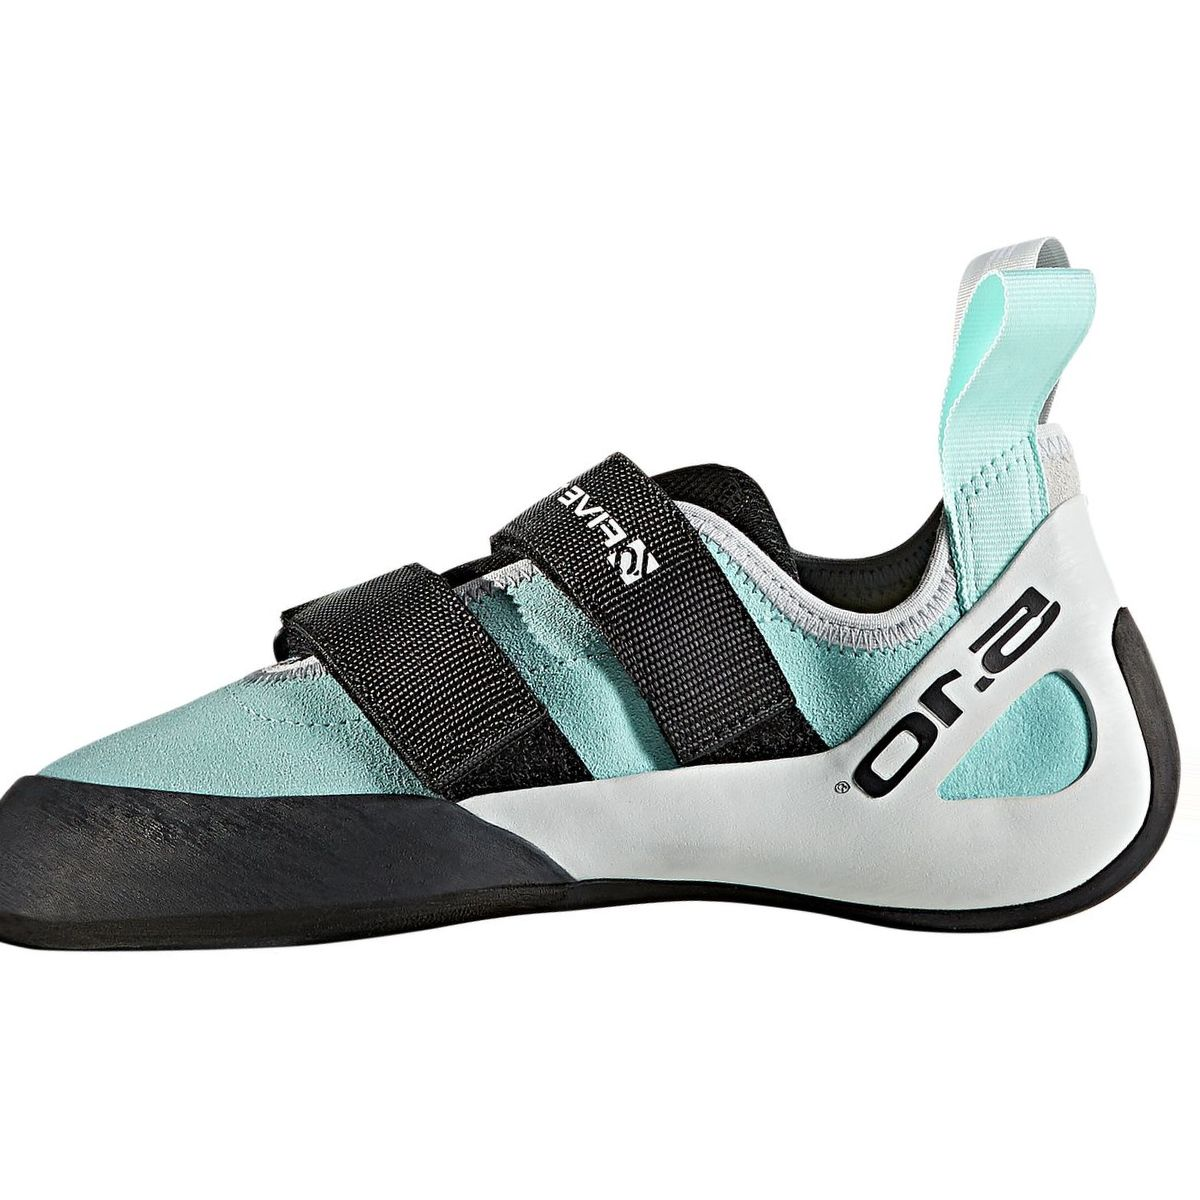 Five Ten Gambit VCS Climbing Shoe - Women's